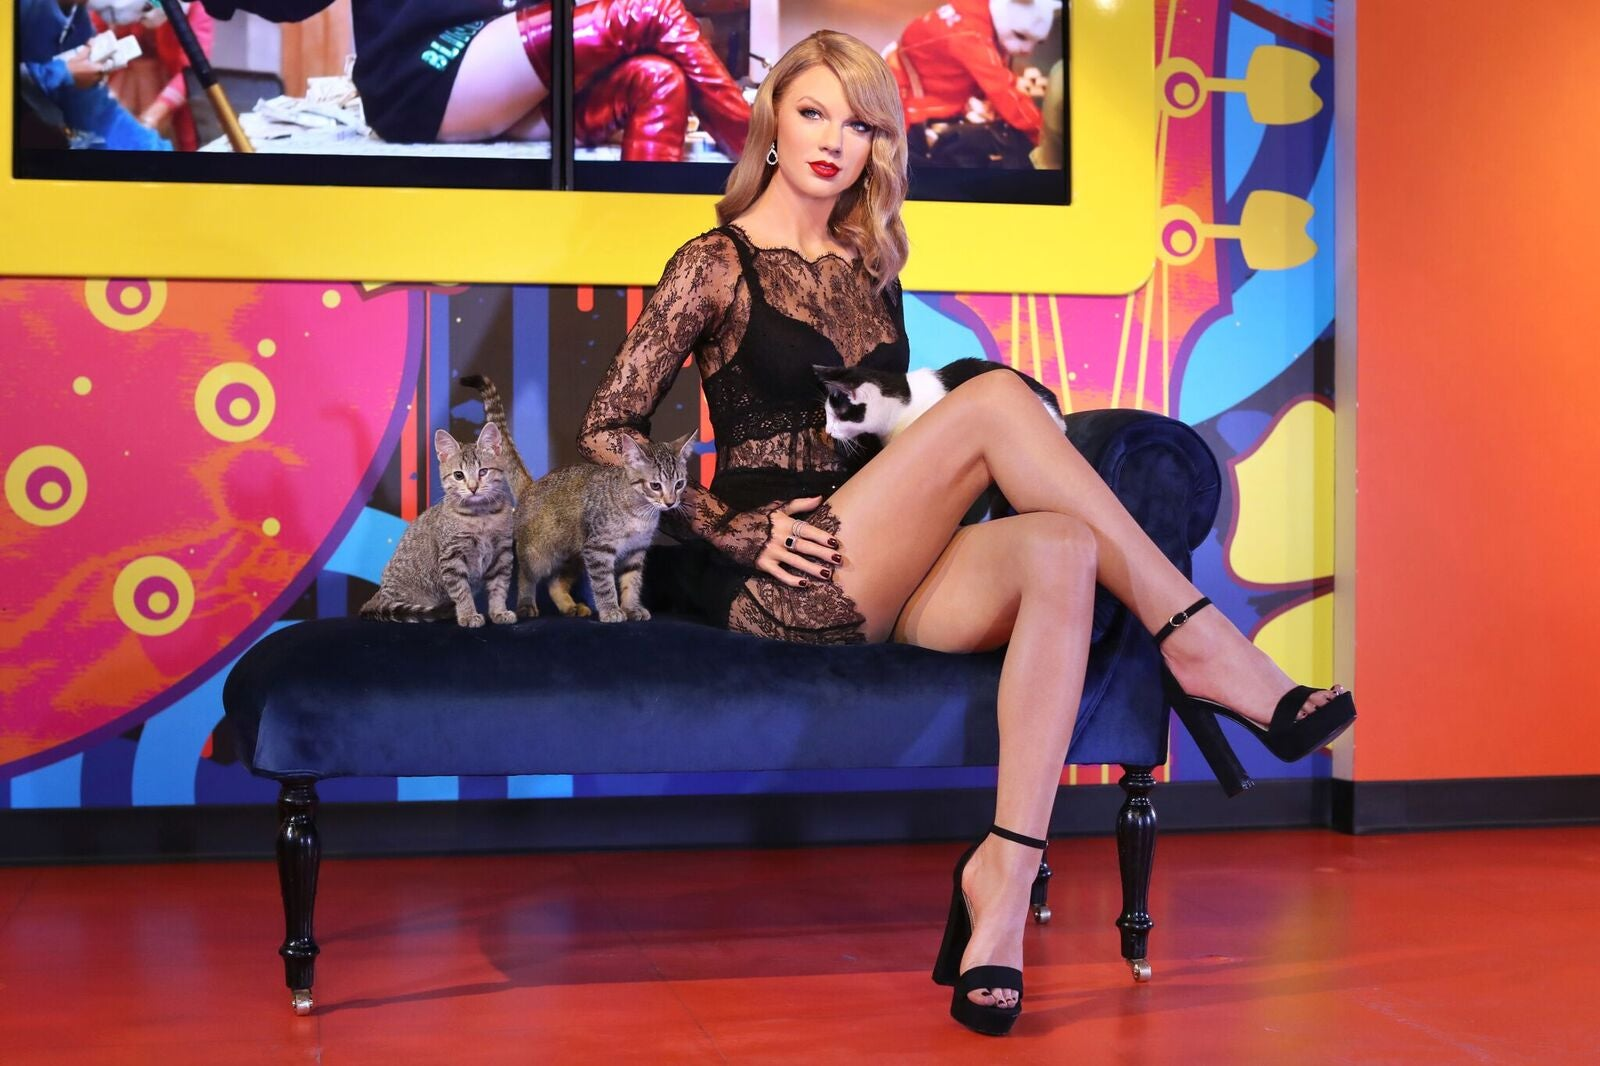 Taylor Swift wax figure at Madame Tussauds San Francisco